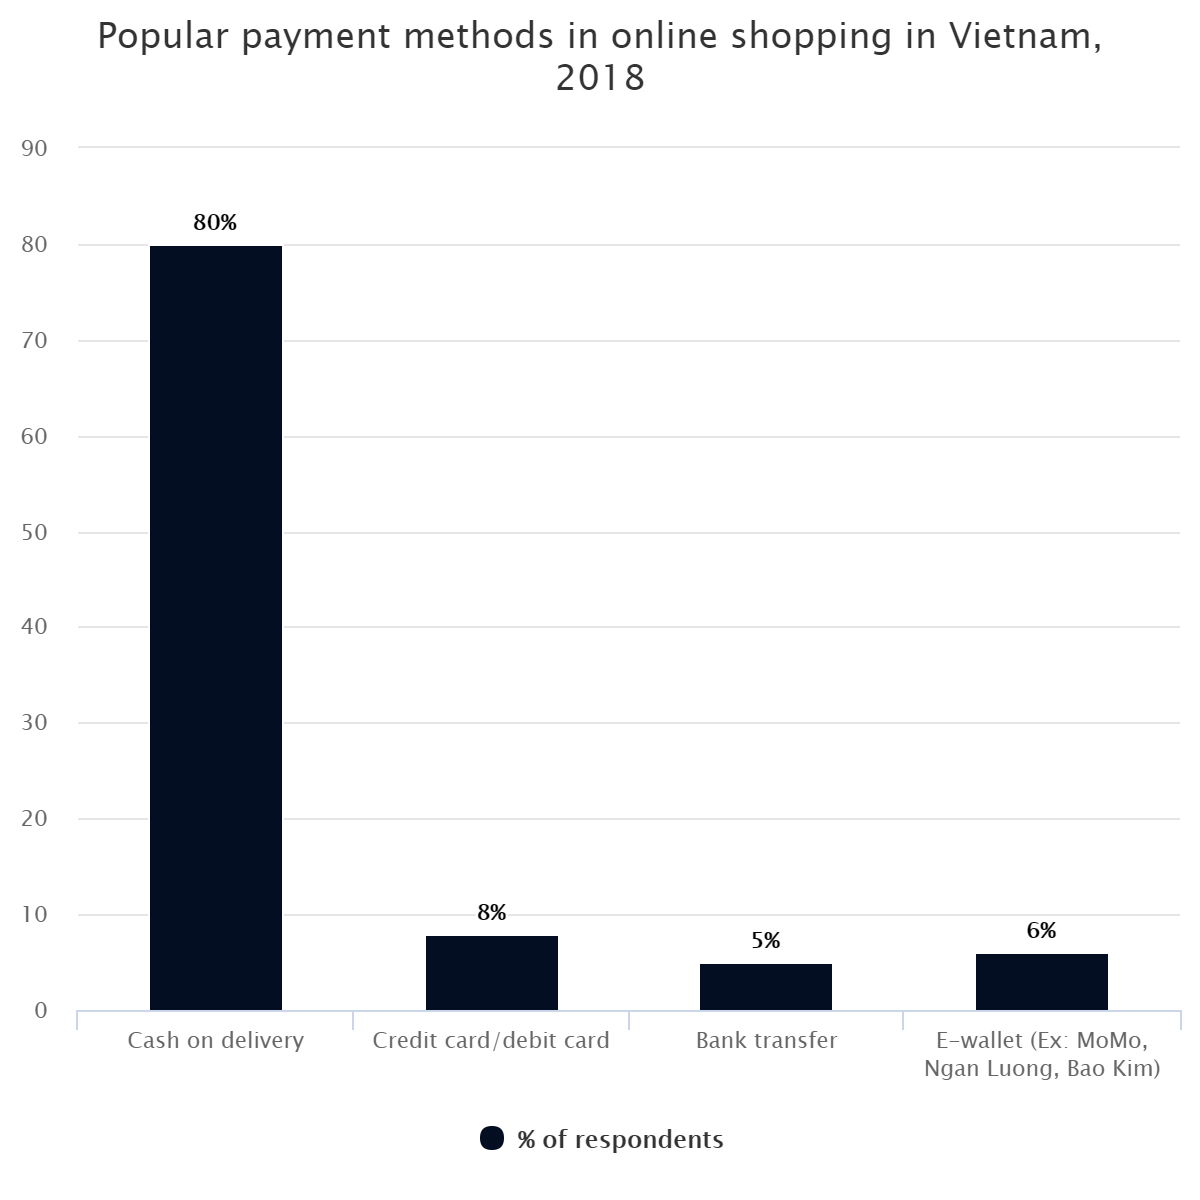 Popular payment methods in online shopping in Vietnam, 2018